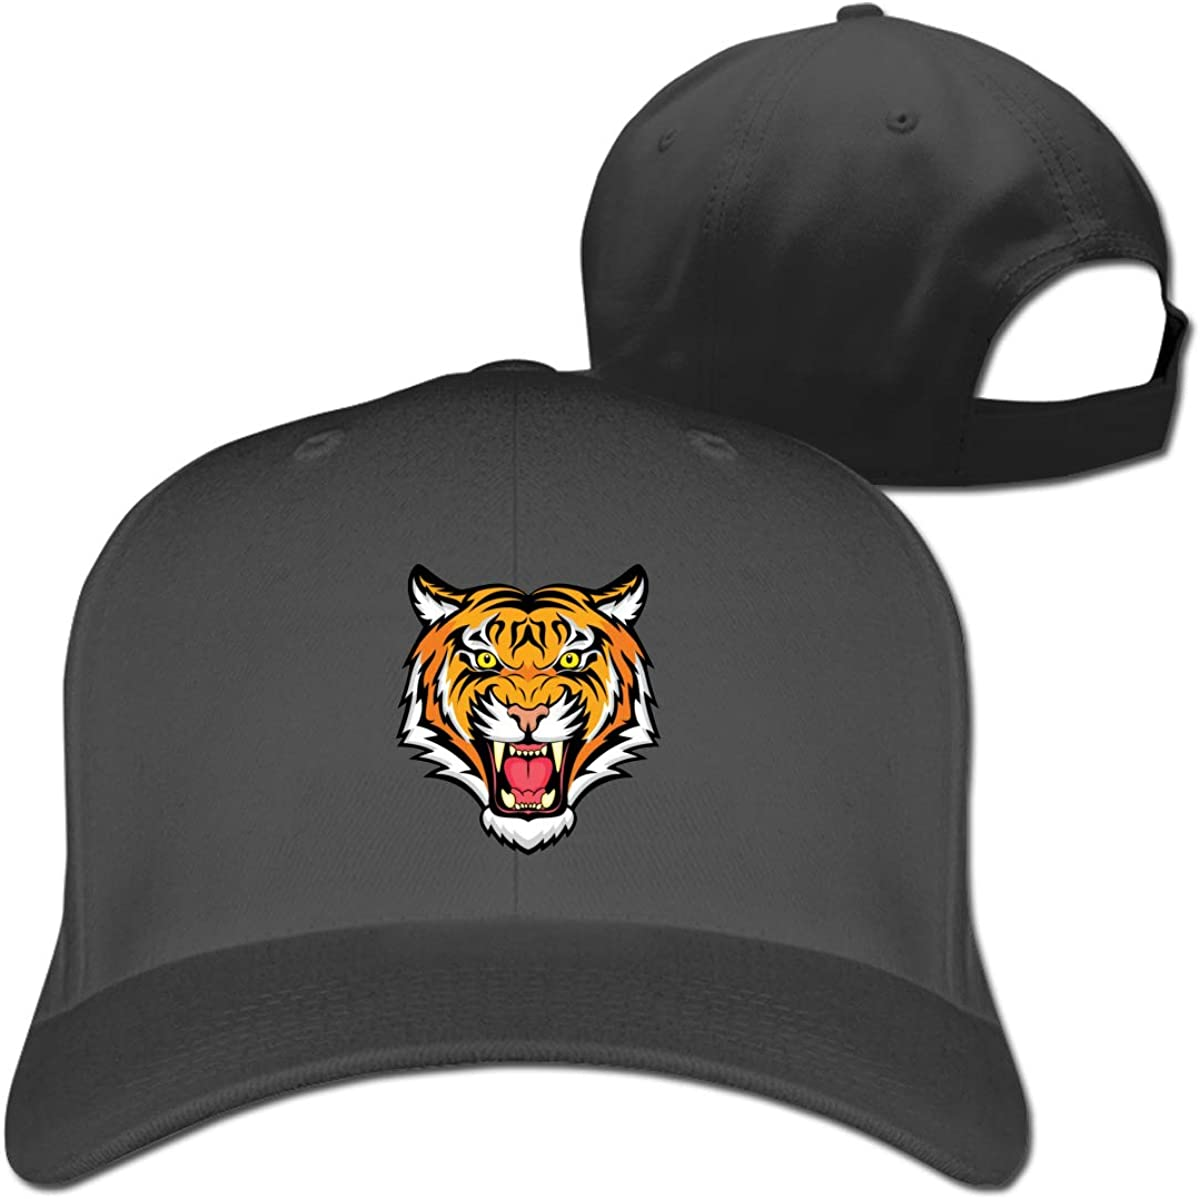 Cool Rawing Africa Tiger Fashion Adjustable Cotton Baseball Caps Trucker Driver Hat Outdoor Cap Black